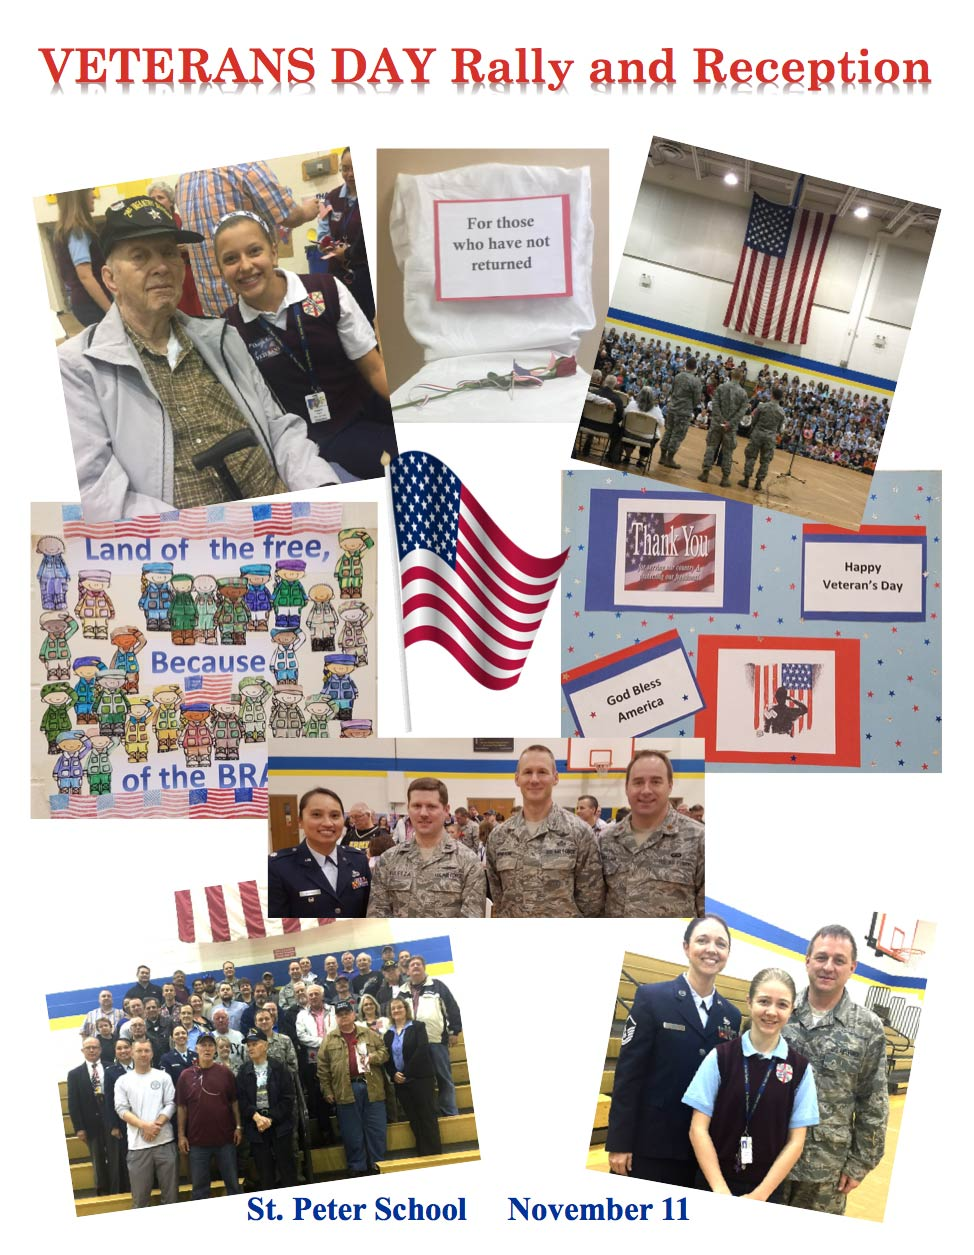 veterans-day-rally